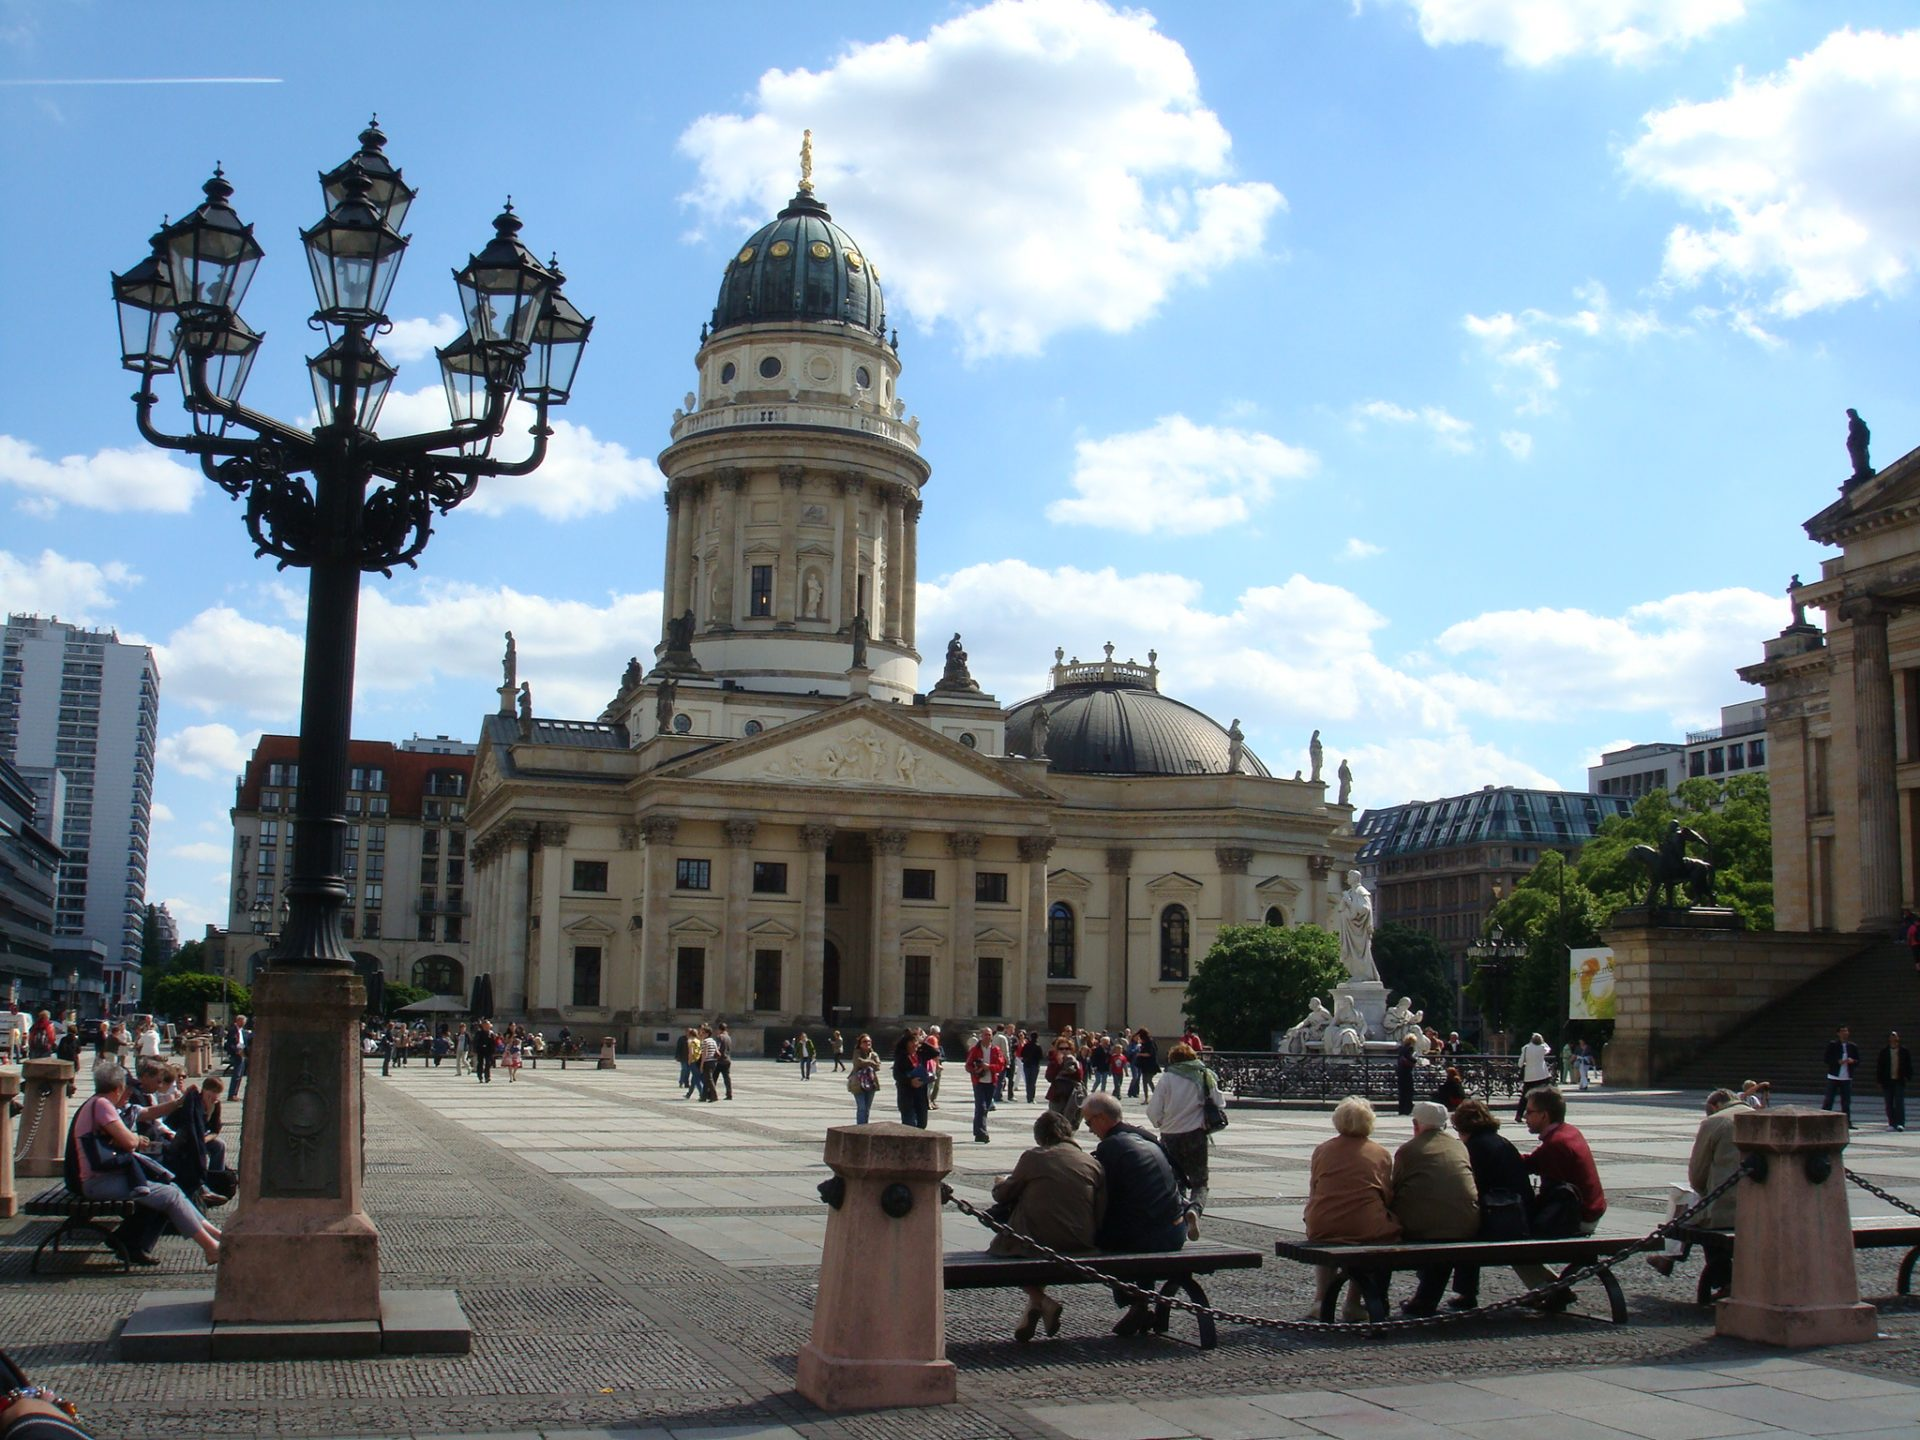 The Gendarmenmarkt, the most beautiful square in Berlin (where a soldier used to be able to procure ANYTHING he needed)